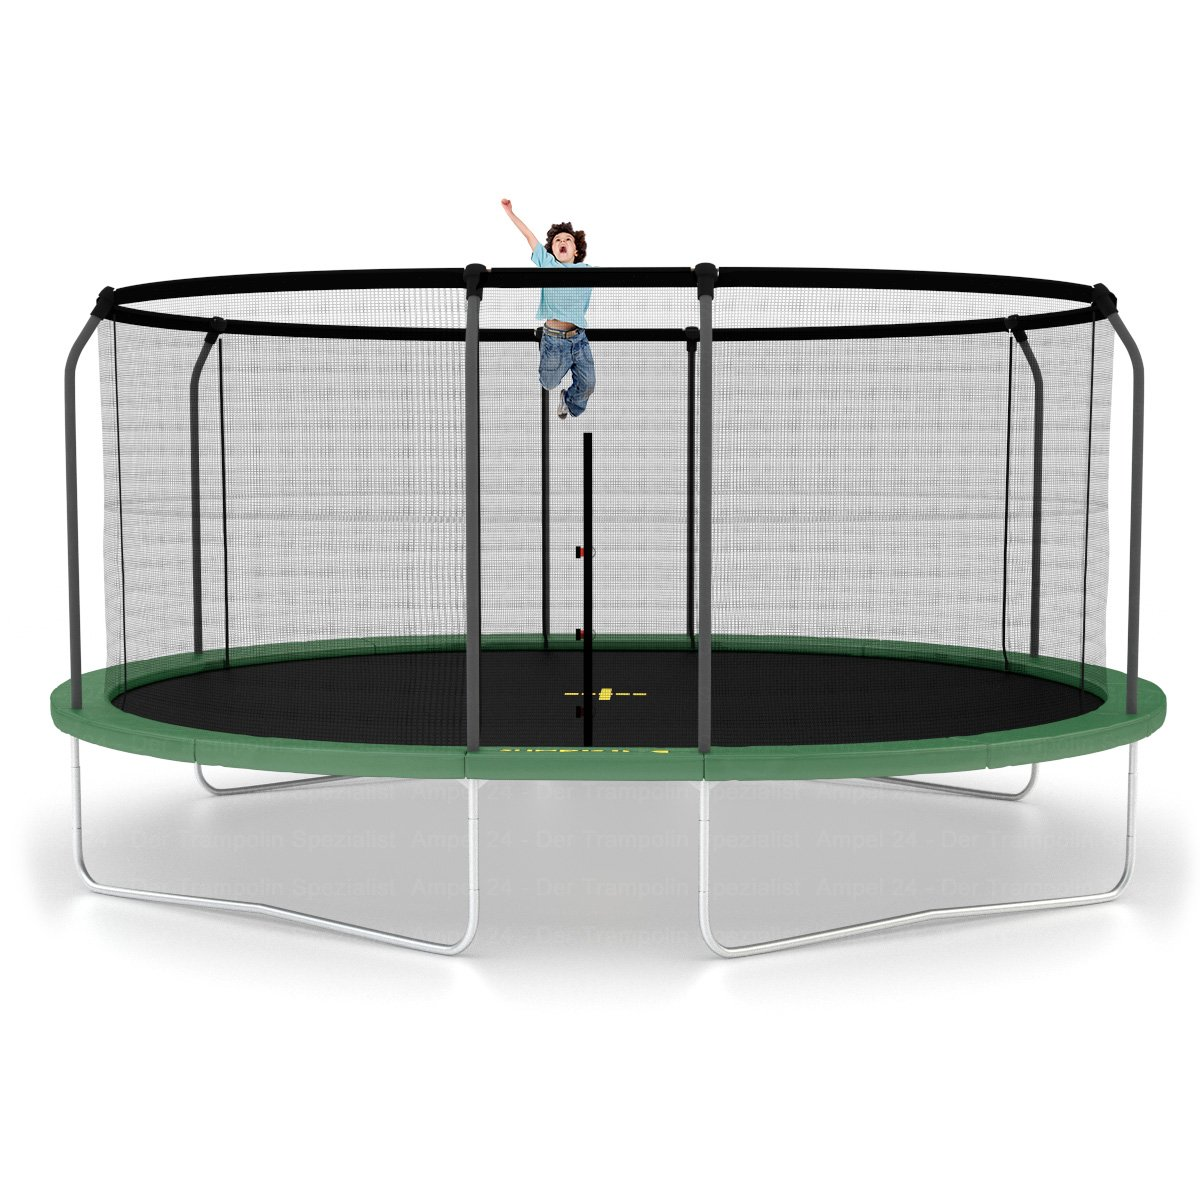 jumpking oval trampolin 520 cm mit netz und leiter. Black Bedroom Furniture Sets. Home Design Ideas